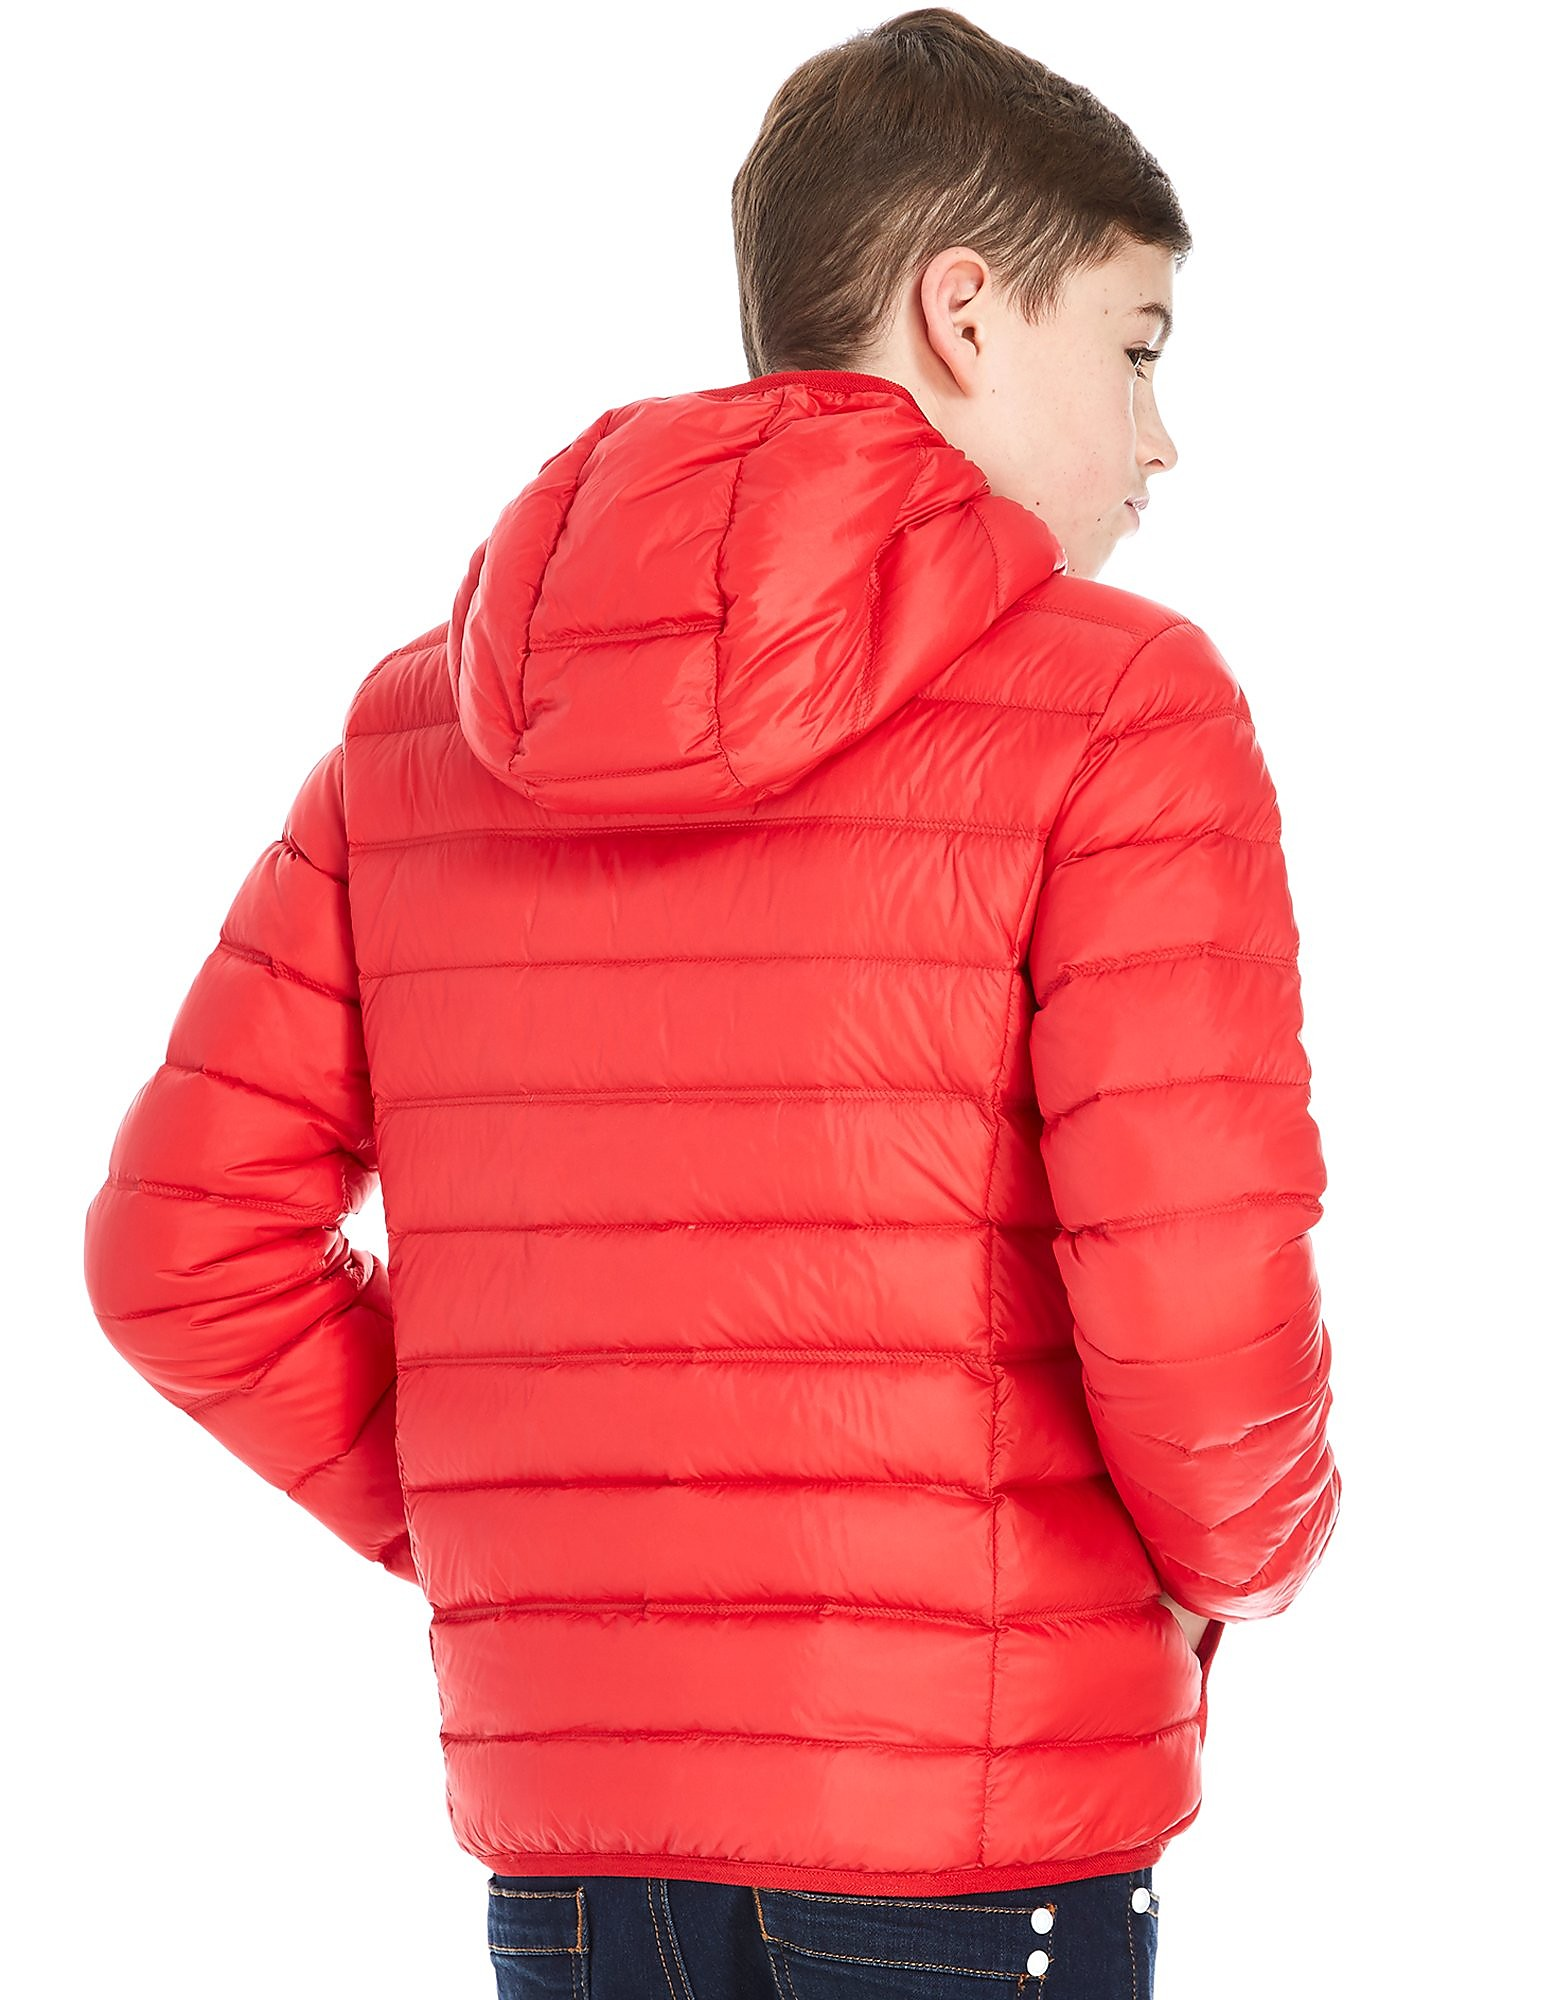 Emporio Armani EA7 Core Down Jacket